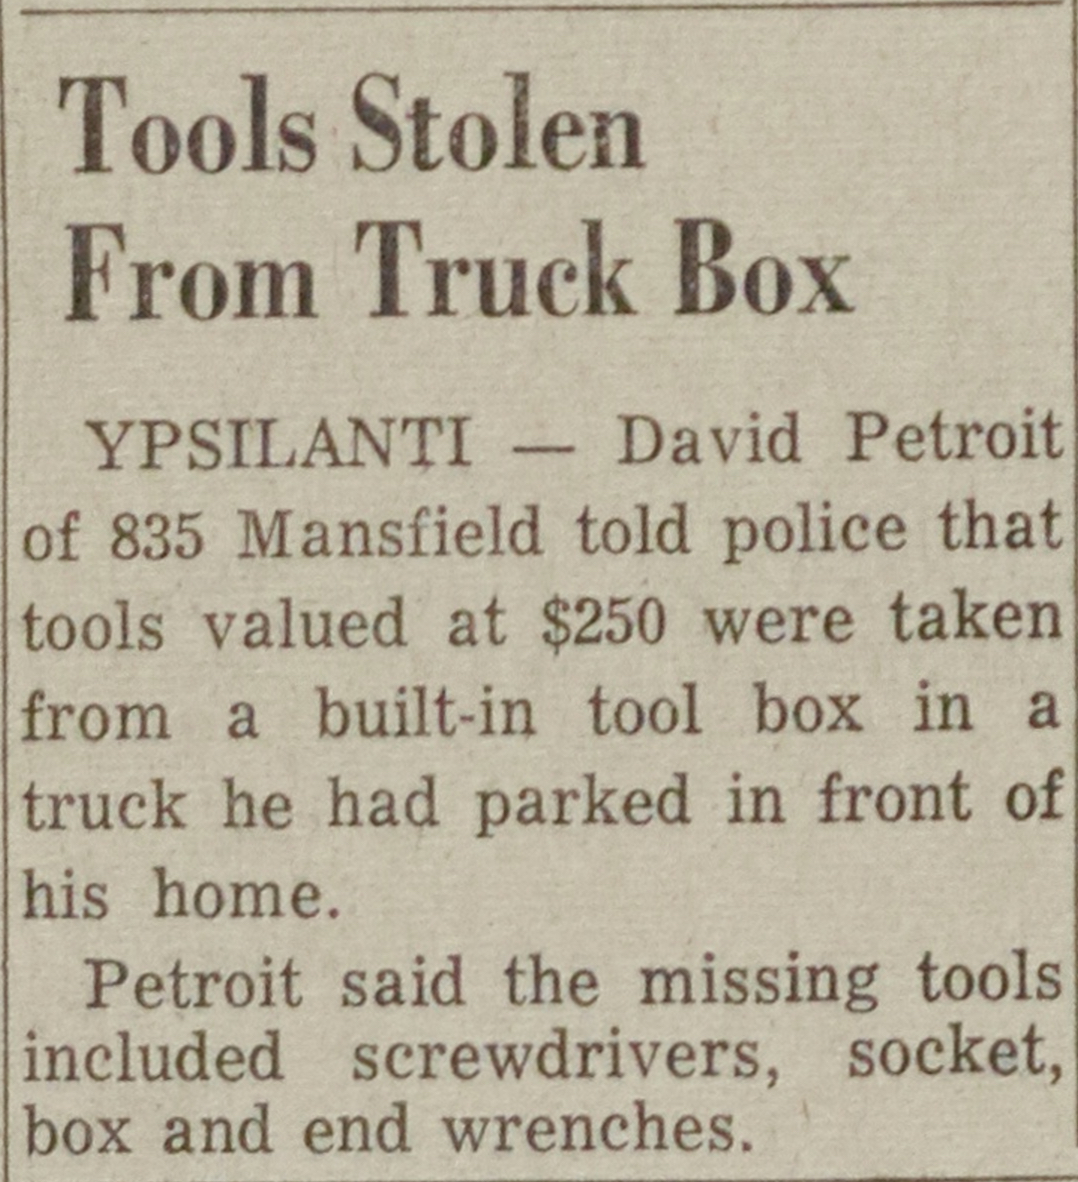 Tools Stolen From Truck Box image